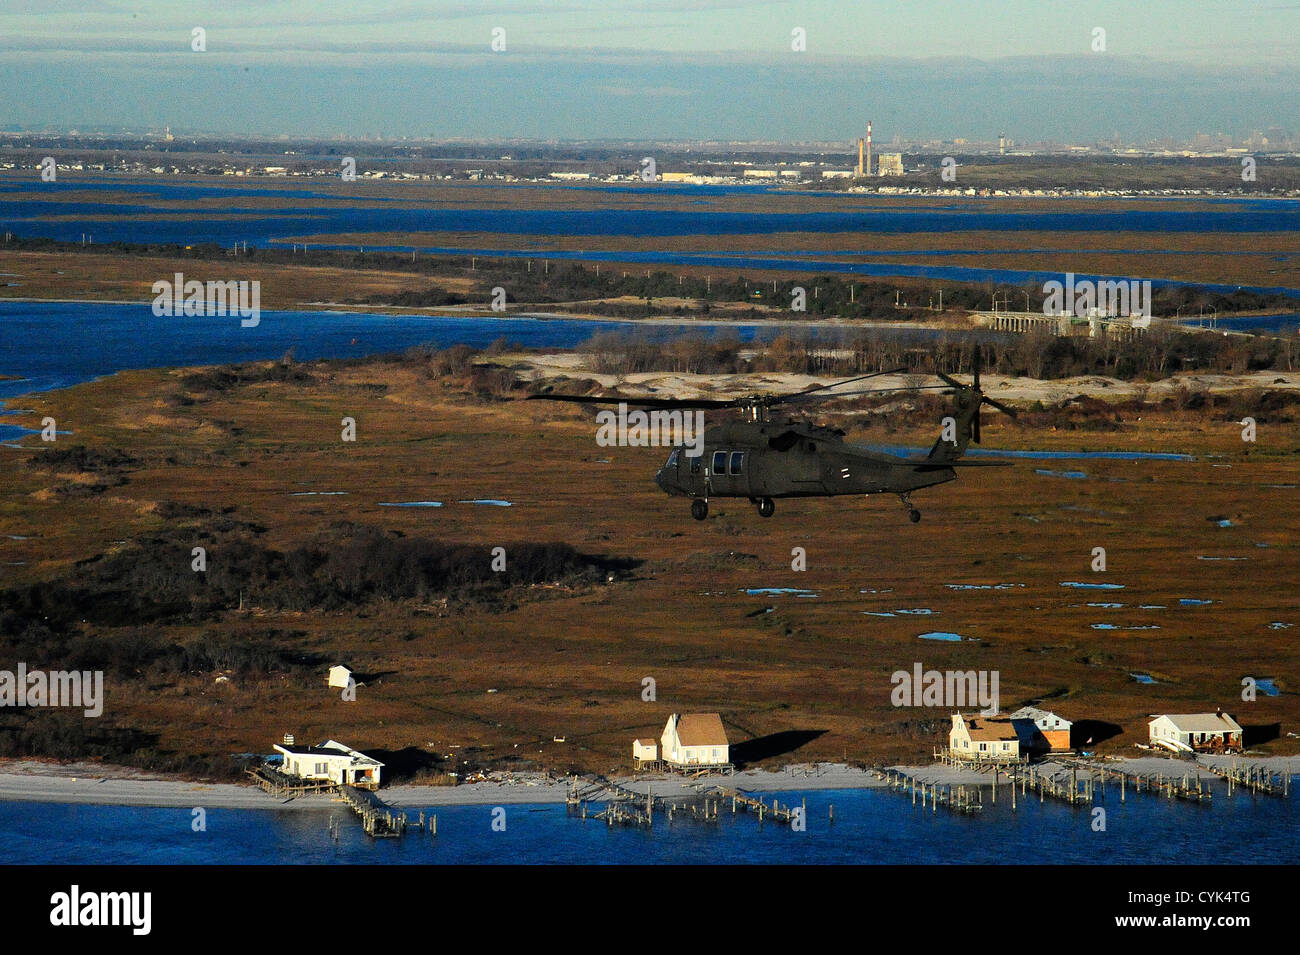 JOINT BASE MCGUIRE-DIX-LAKEHURST, N.J. – An aerial view of storm damage along the coast of New York from a Georgia Stock Photo